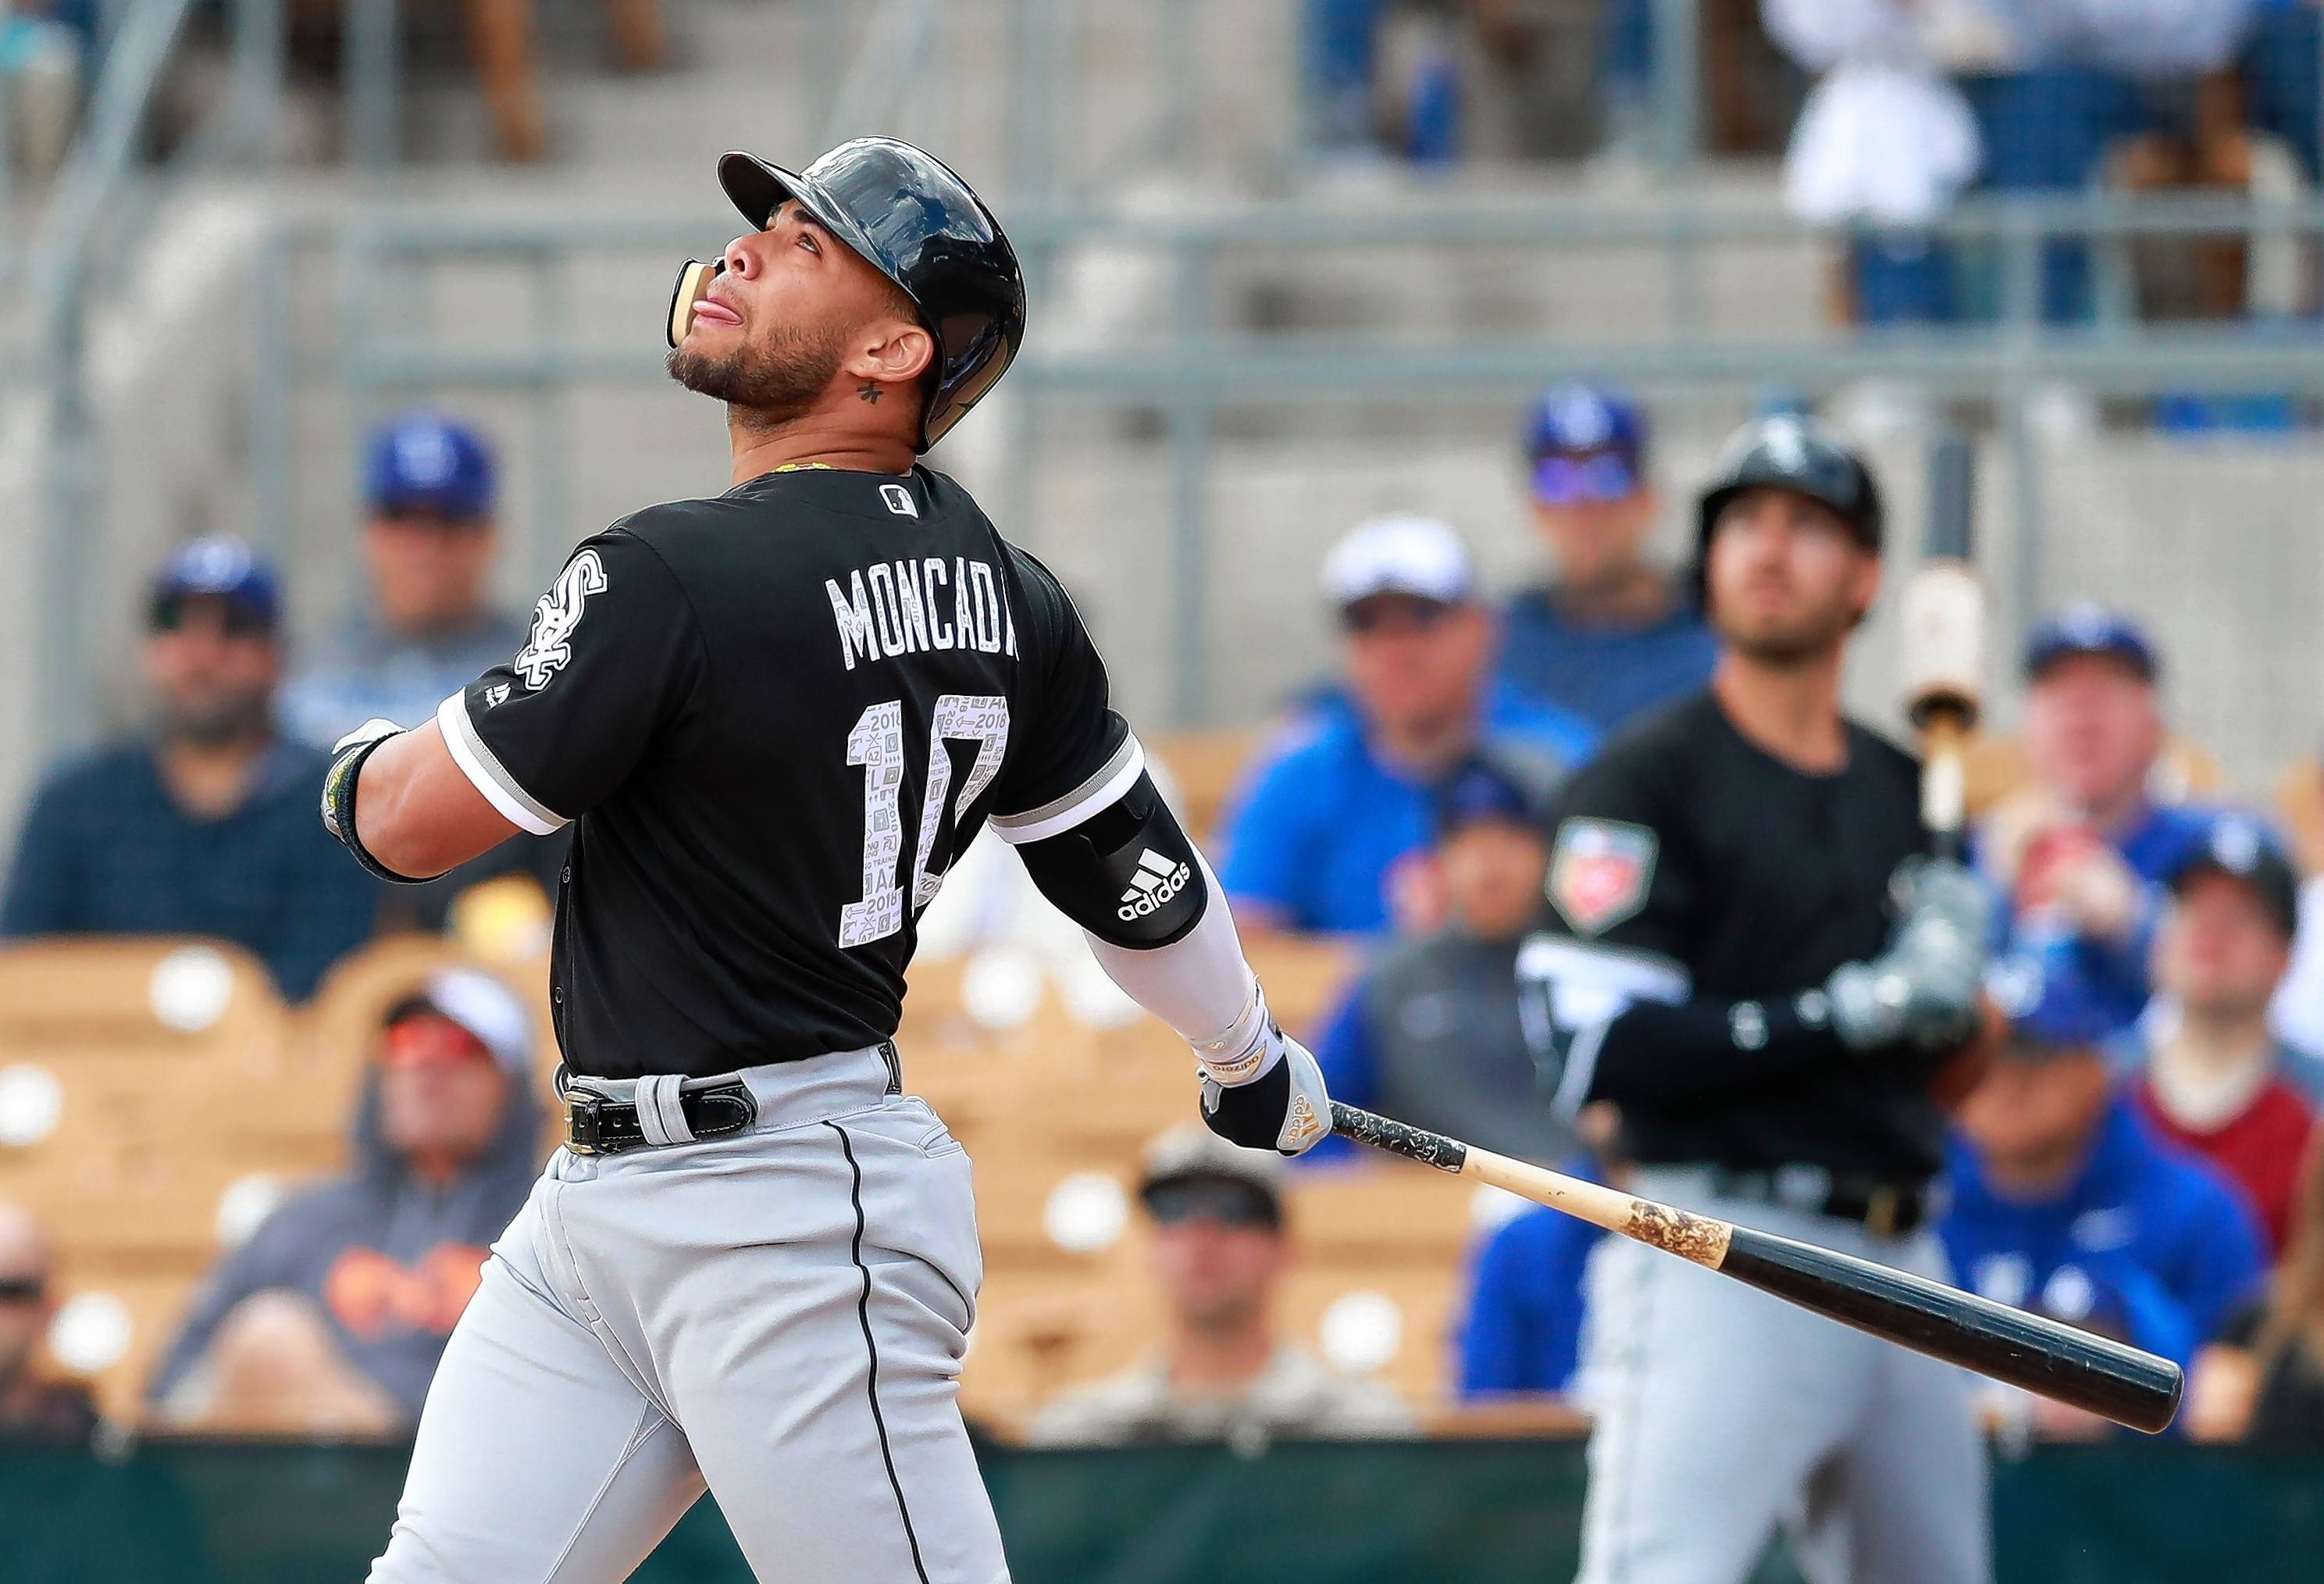 Chicago White Sox second baseman Yoan Moncada bats during a baseball spring exhibition game against the Los Angeles Dodgers, Friday, Feb. 23, 2018, in Glendale, Ariz.